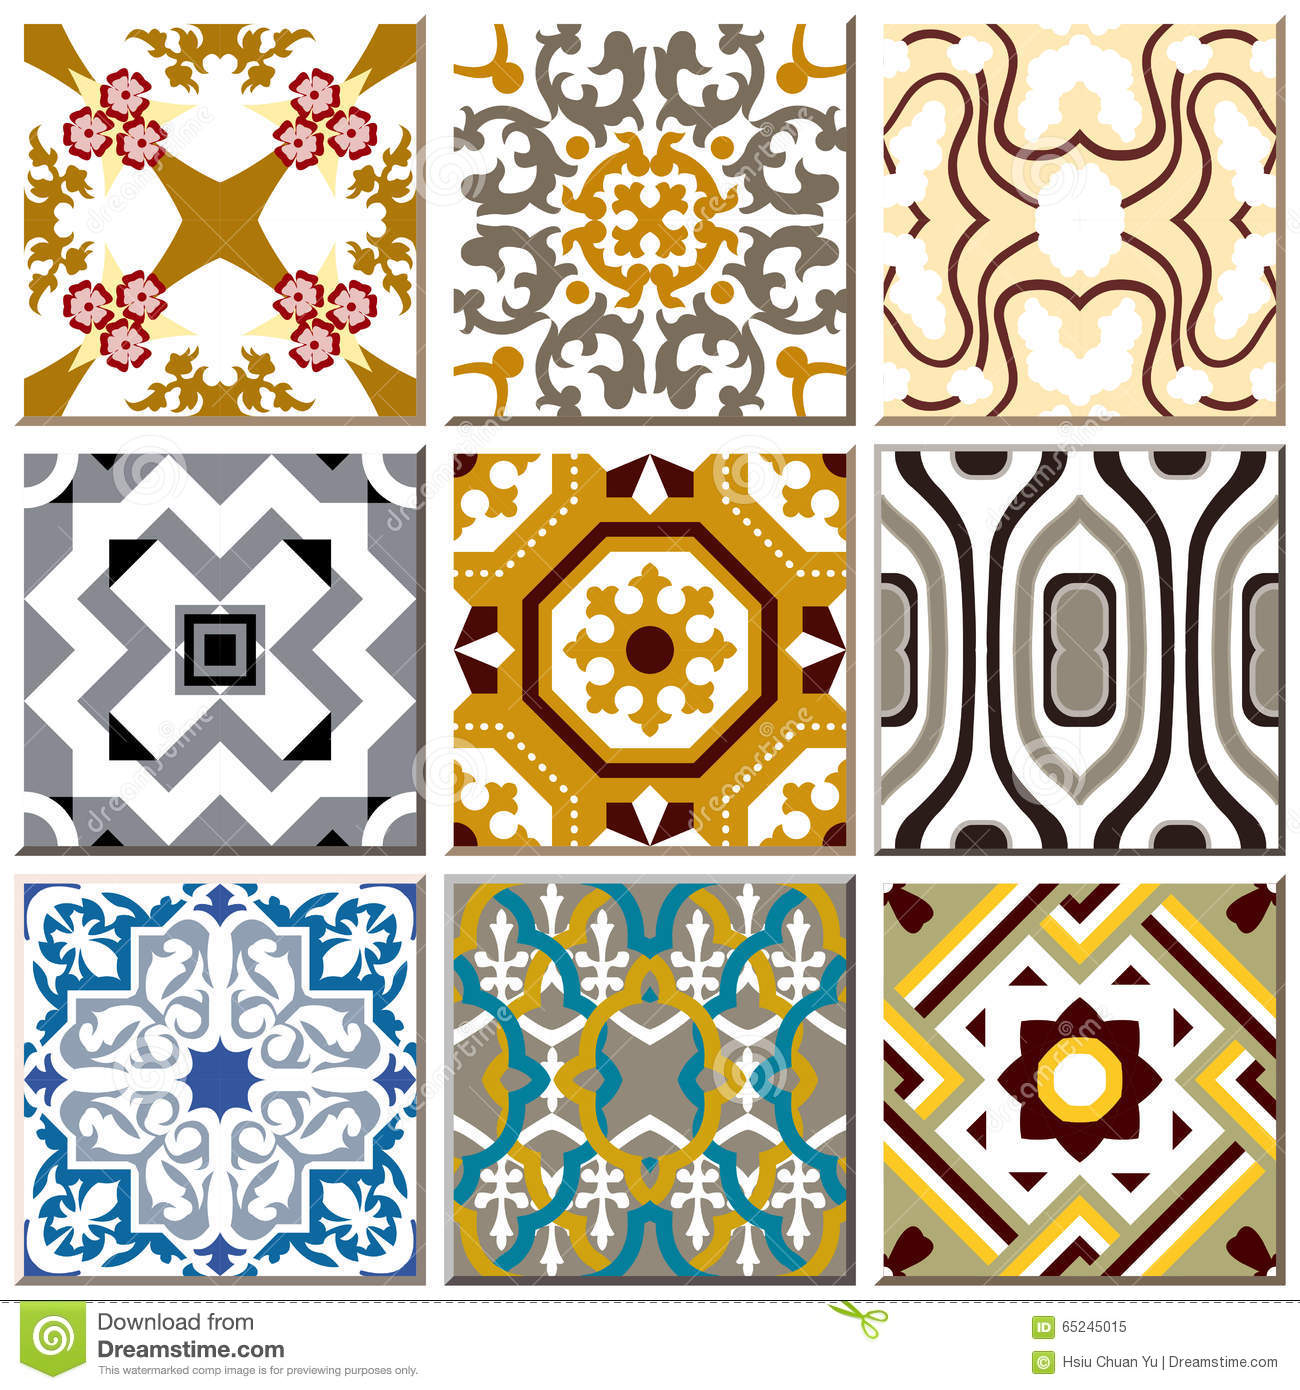 Vintage retro ceramic tile pattern set collection 008 stock vector vintage retro ceramic tile pattern set collection 008 doublecrazyfo Image collections